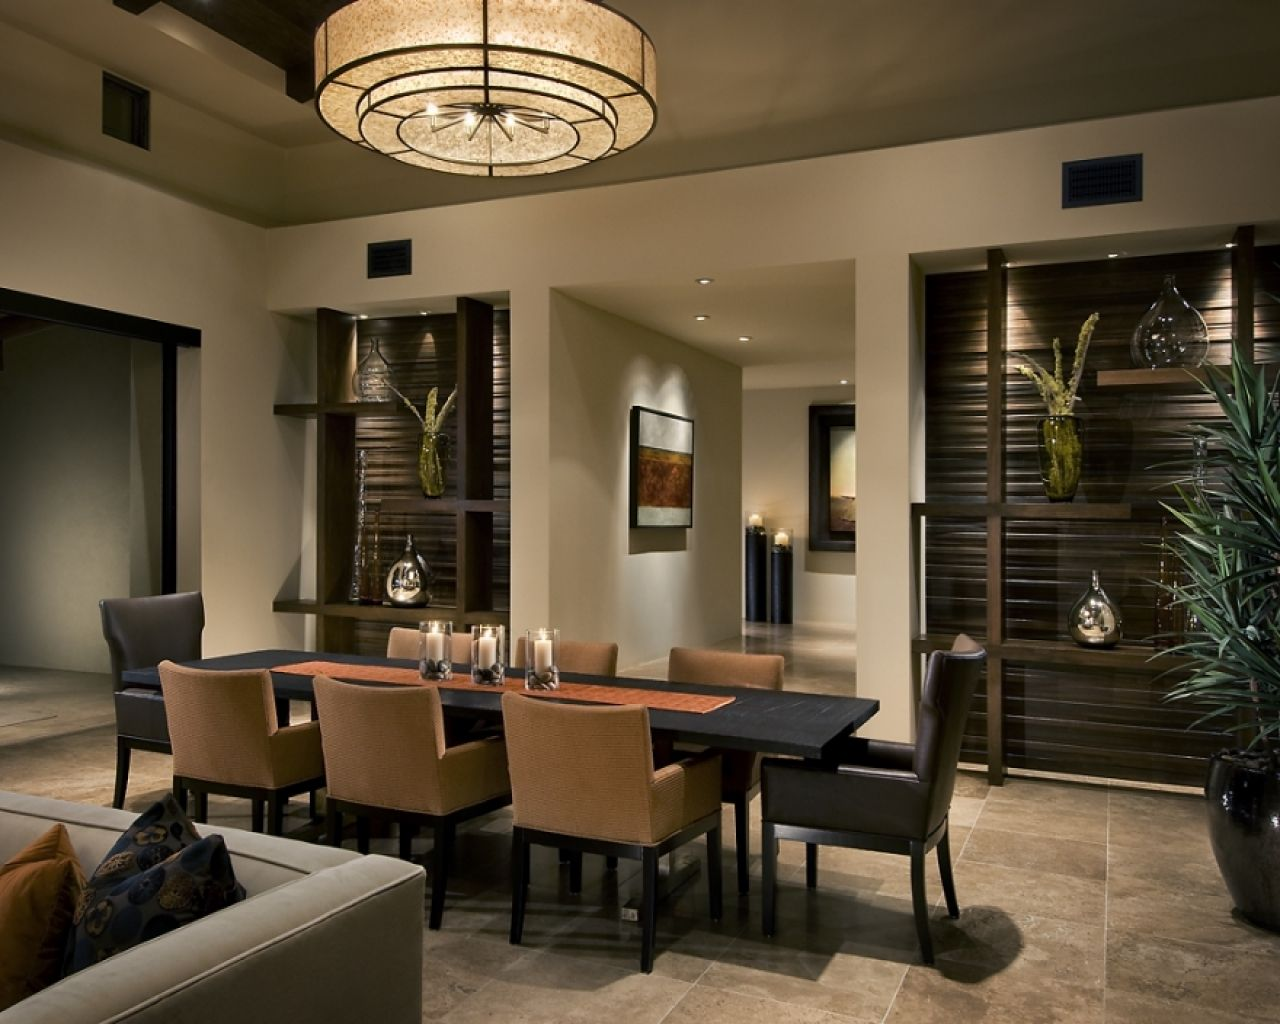 25 Best Contemporary Dining Room Design Ideas Contemporary Dining Room Design Interior Design Dining Room Dining Room Interiors